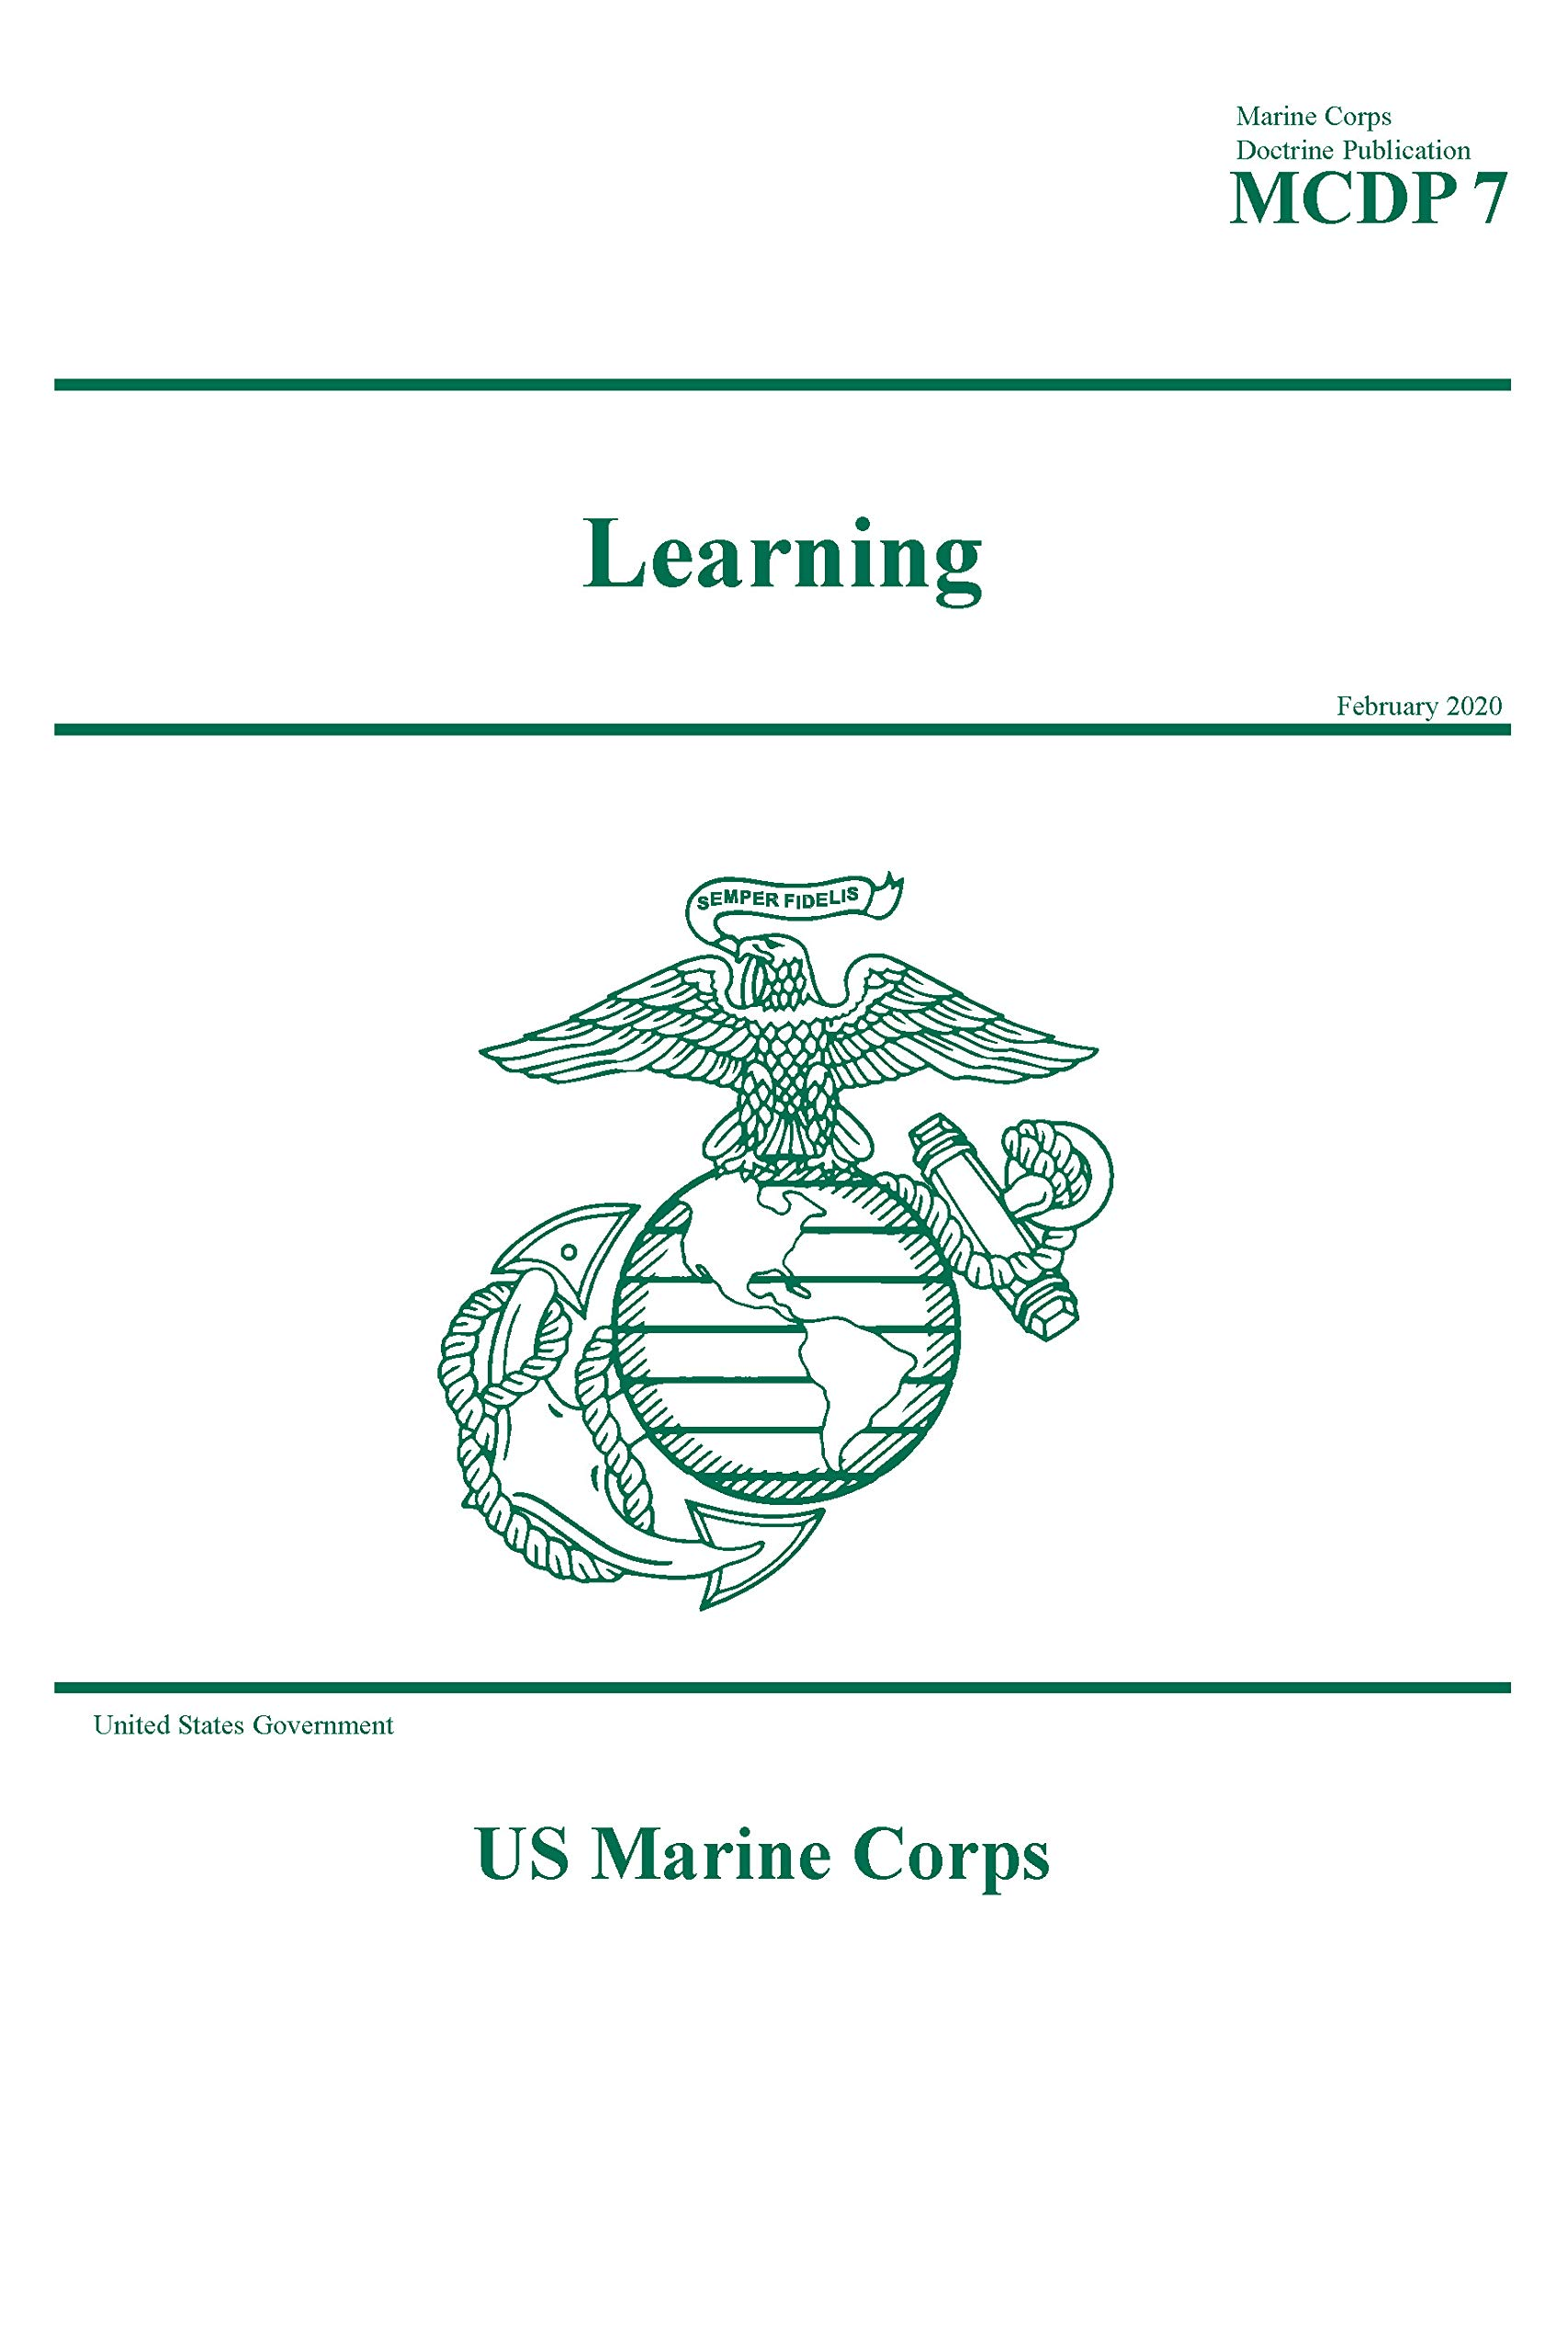 Marine Corps Doctrine Publication MCDP 7 Learning February 2020